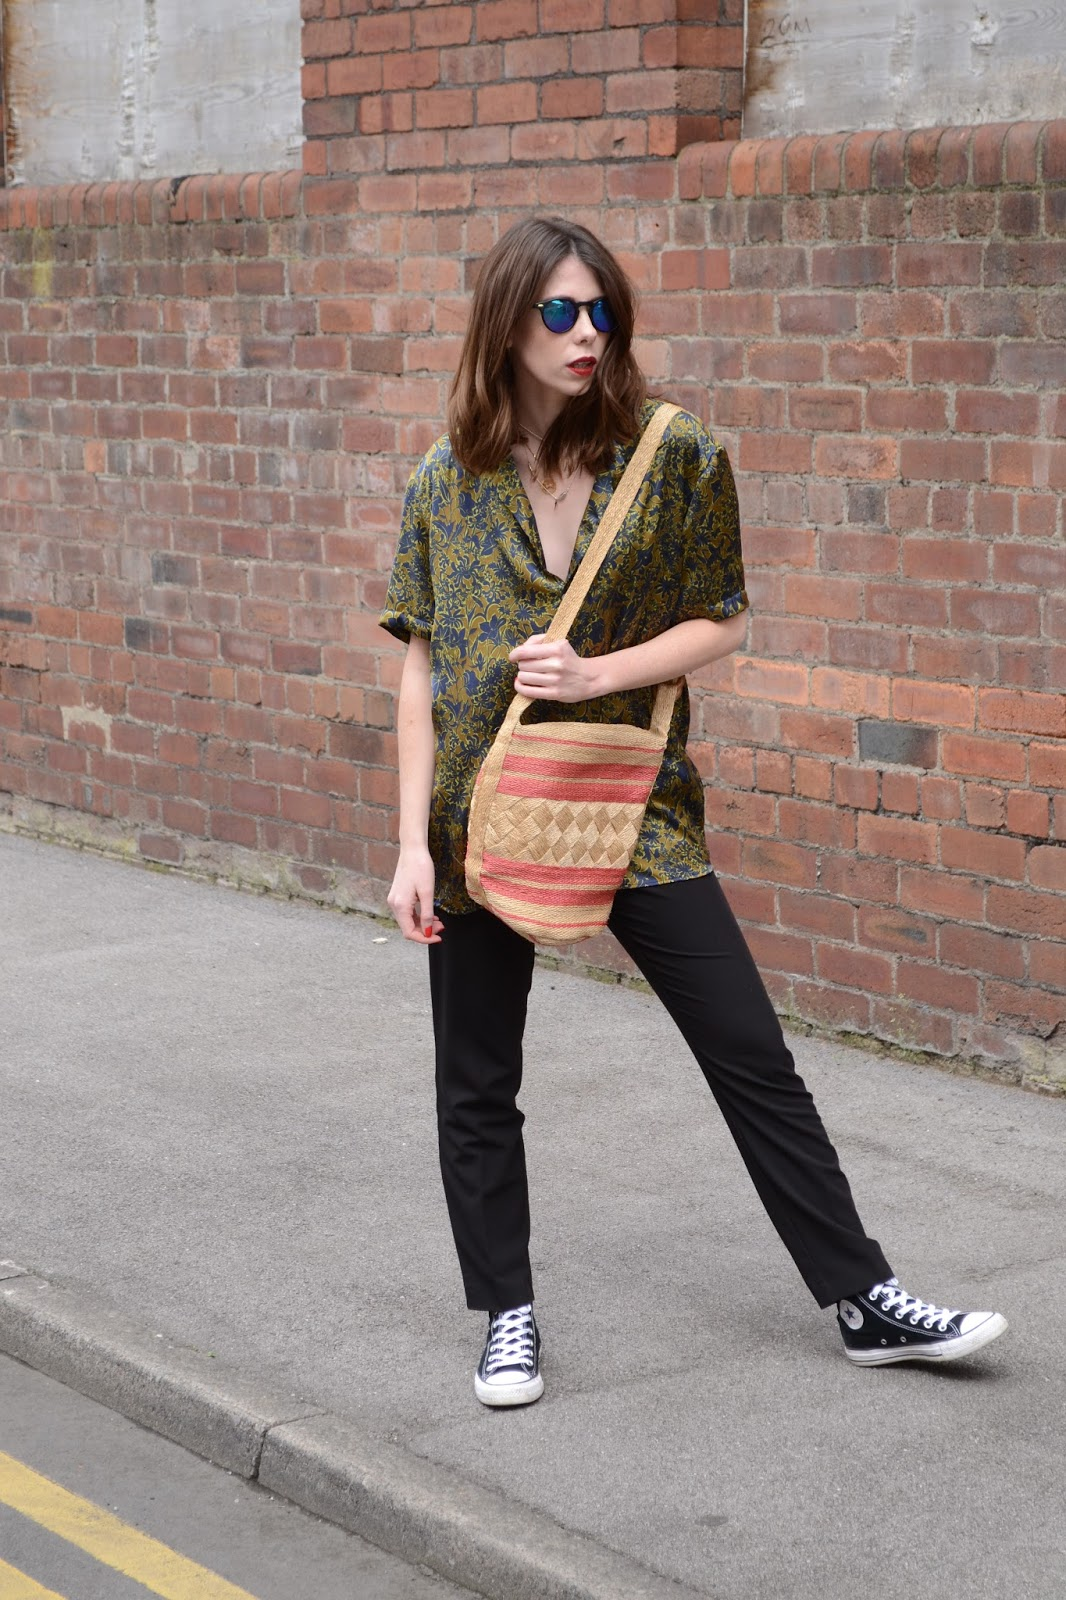 5 Simple Tips That Will Help You Get Ready Quicker, Topshop, Zara, Converse, Straw bag